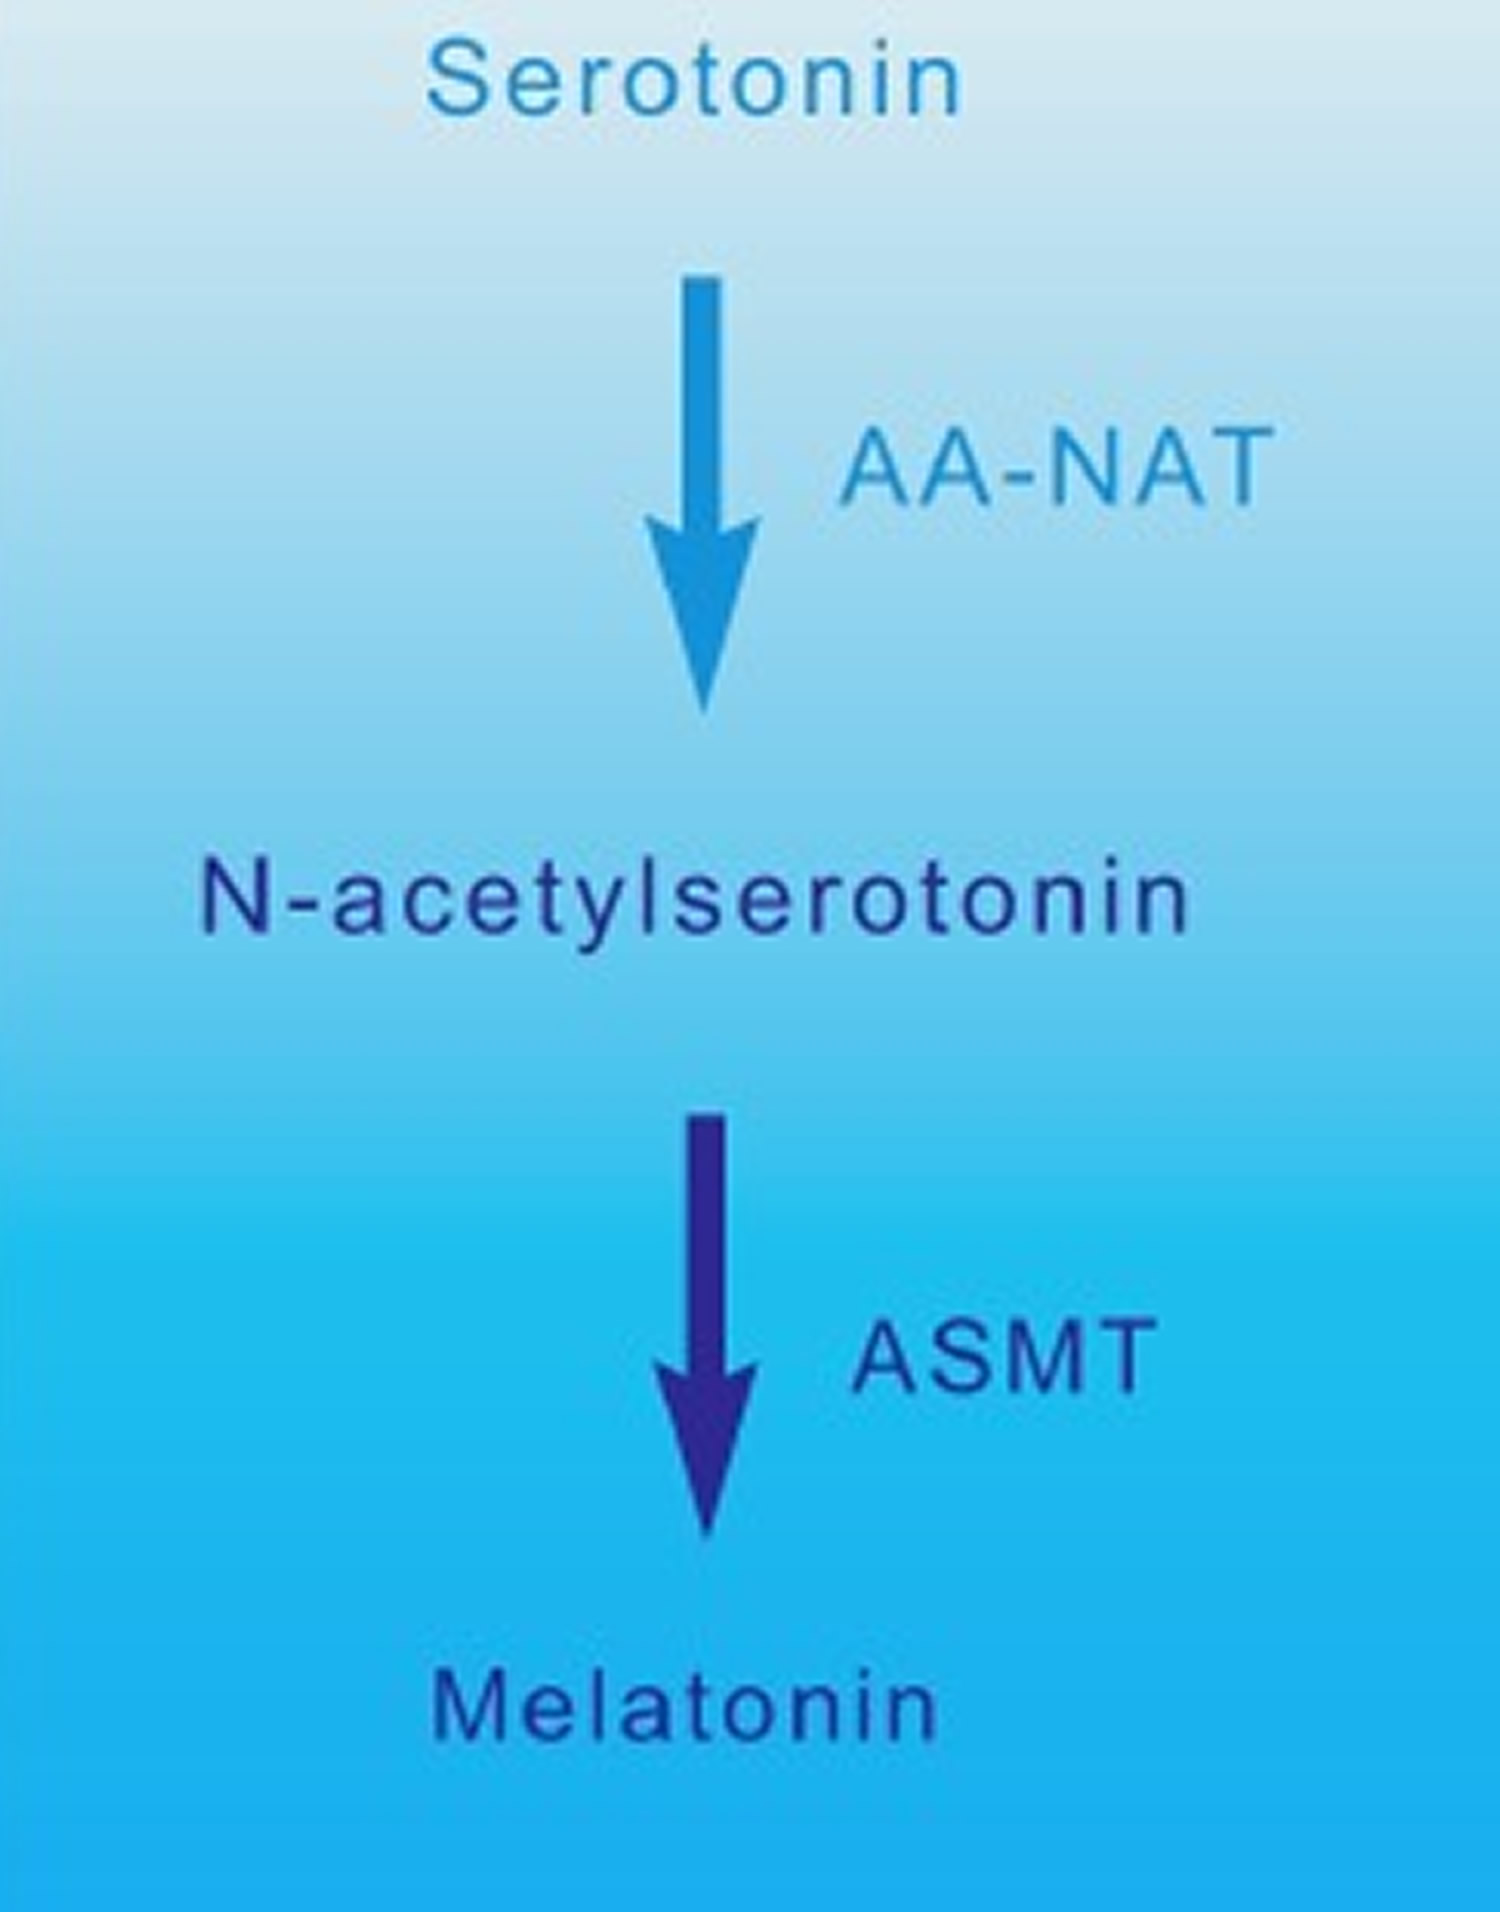 Melatonin synthesis